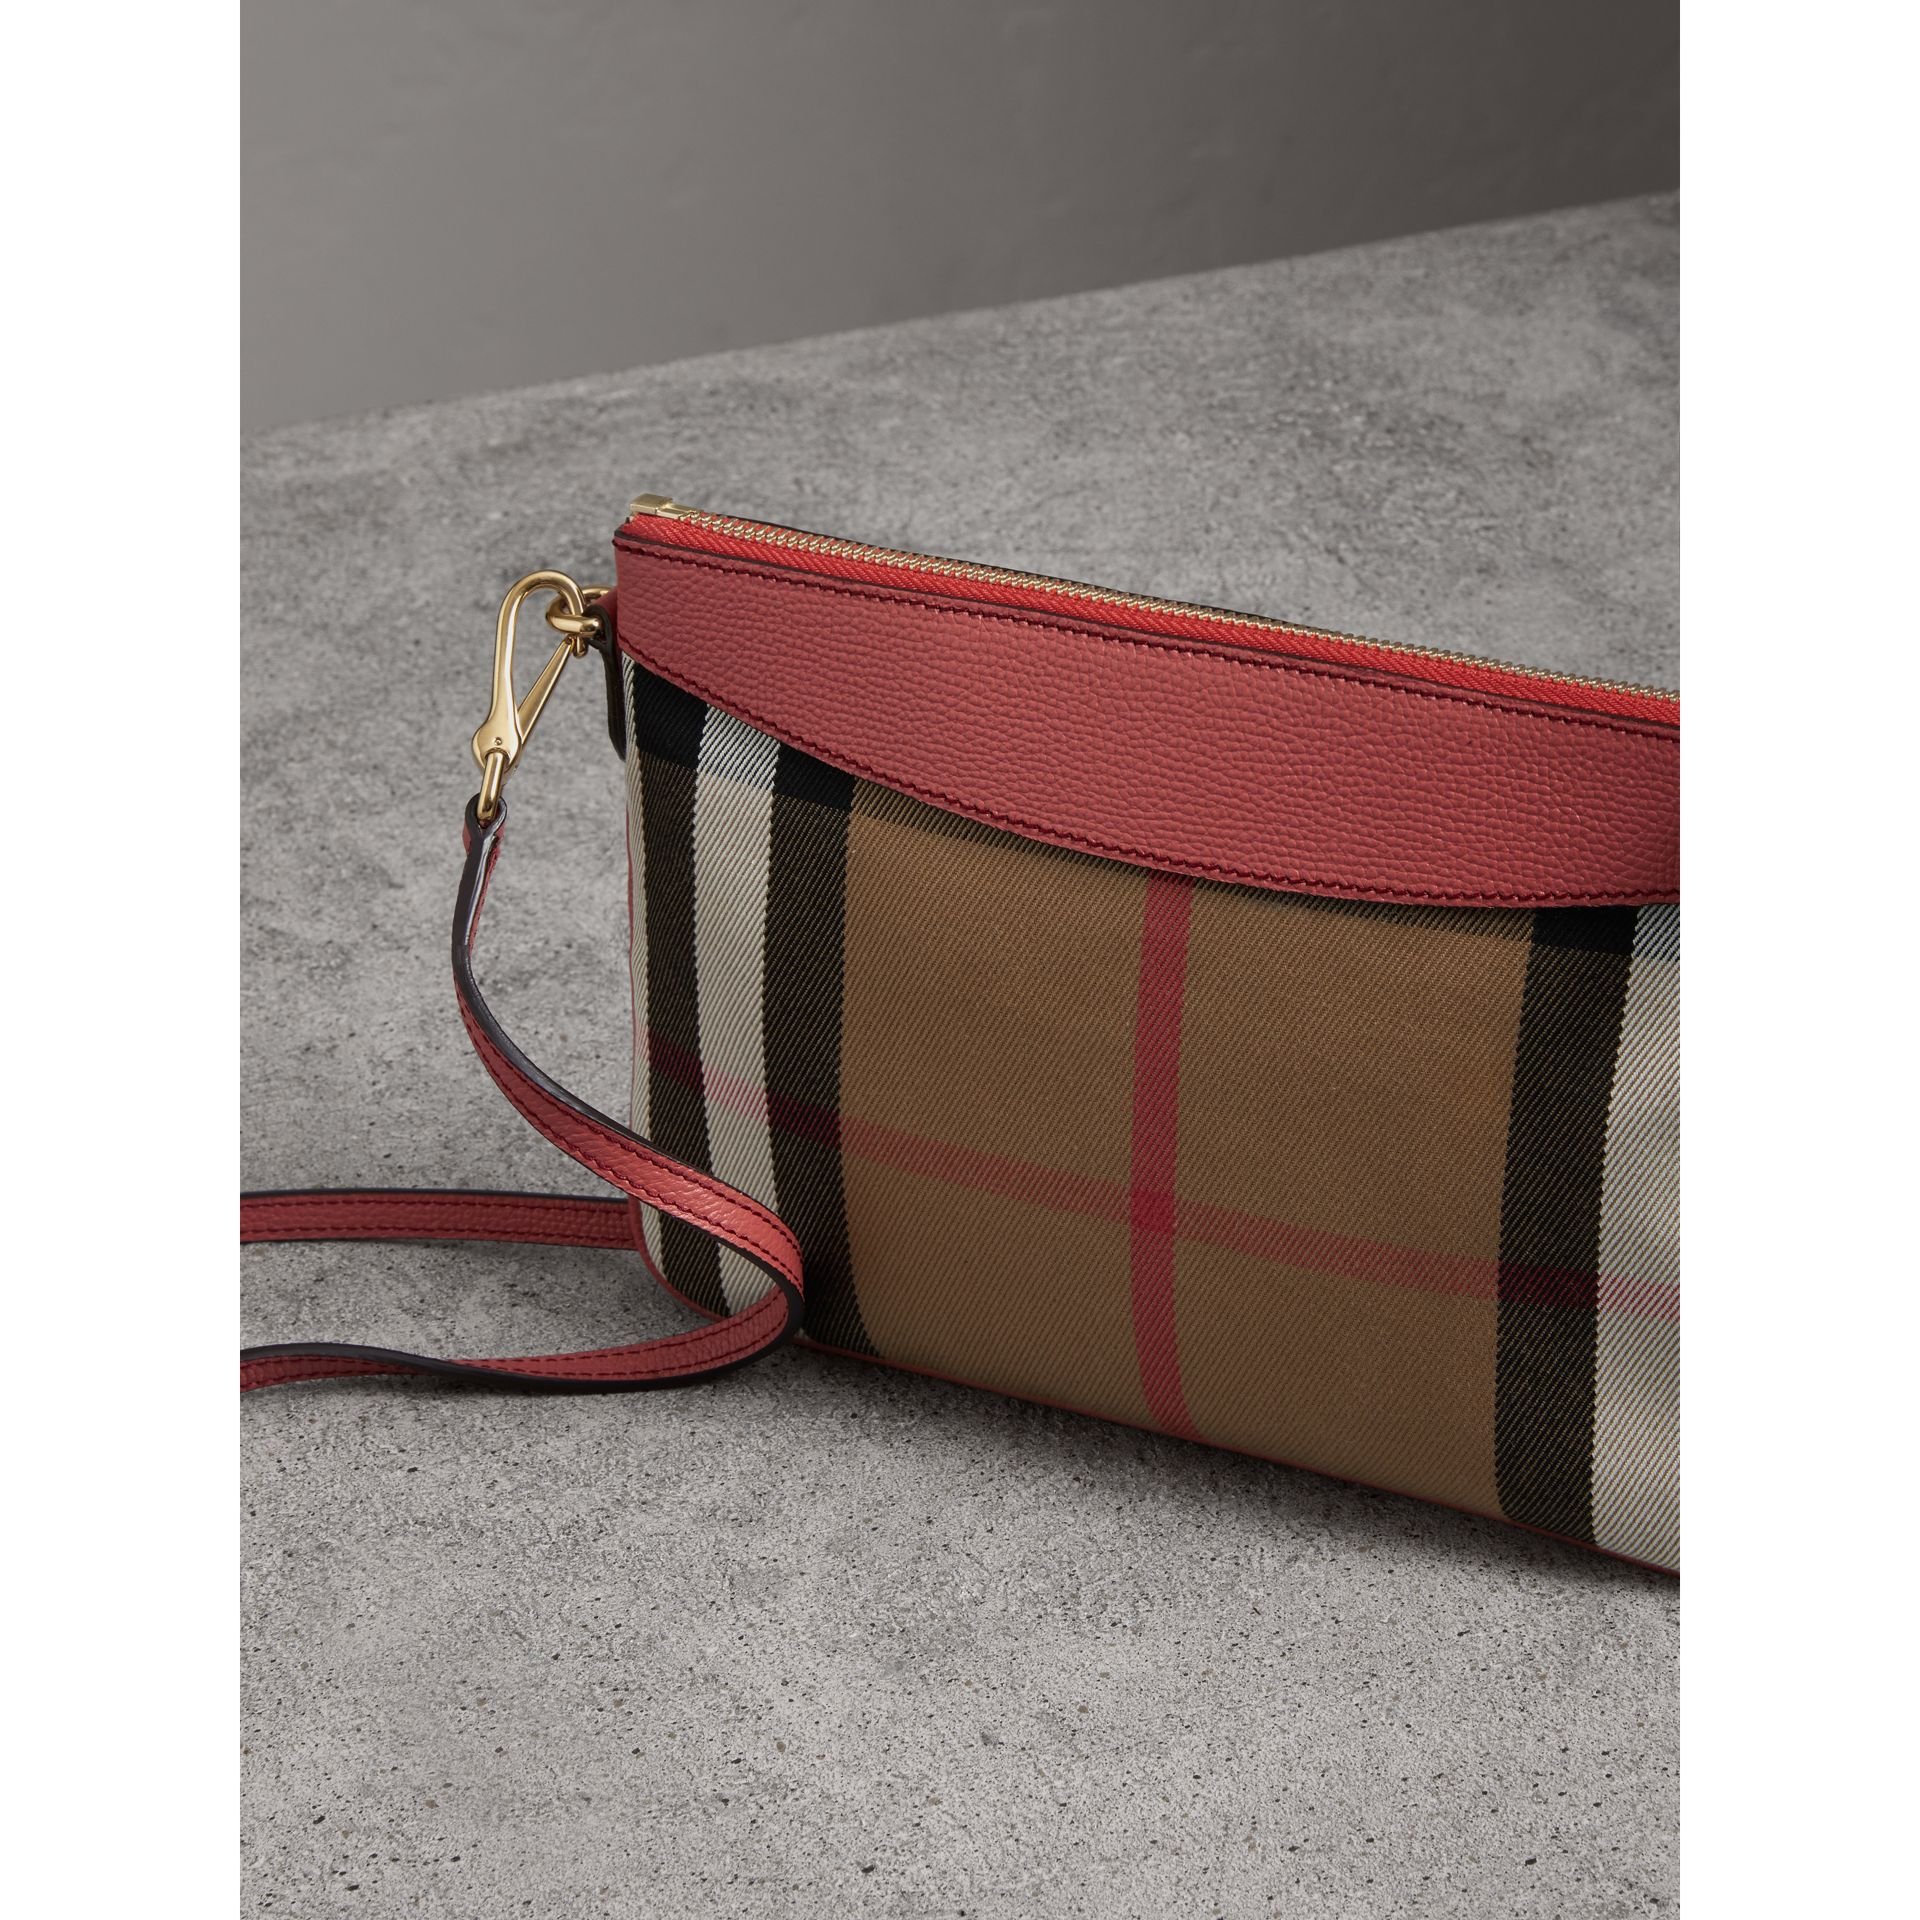 House Check and Leather Clutch Bag in Cinnamon Red - Women | Burberry Australia - gallery image 4